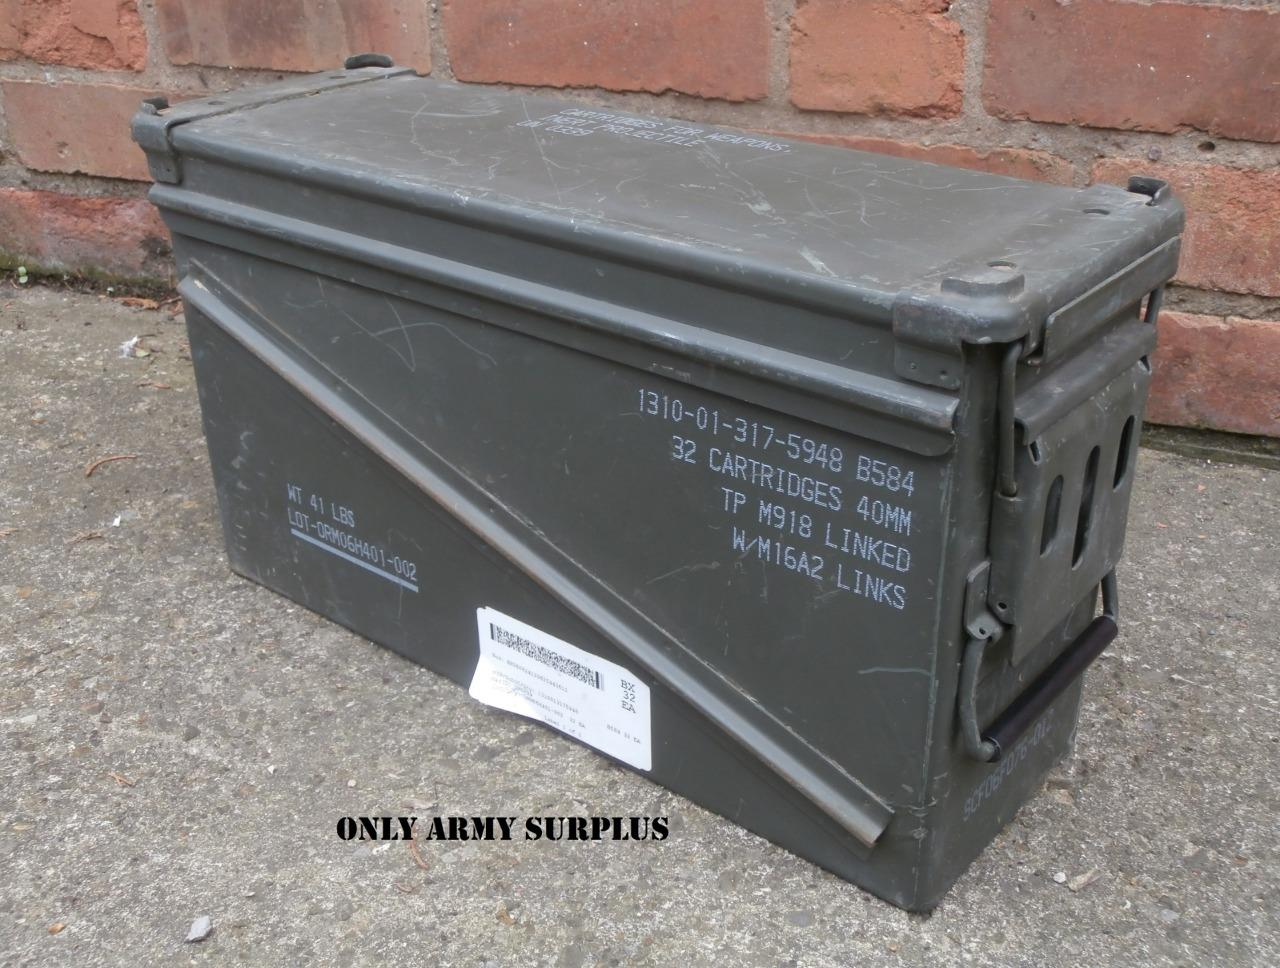 Details about US Army Large Metal Ammo Box Tool Box Storage Ammunition  Olive Surplus Tin Box 81385159d64